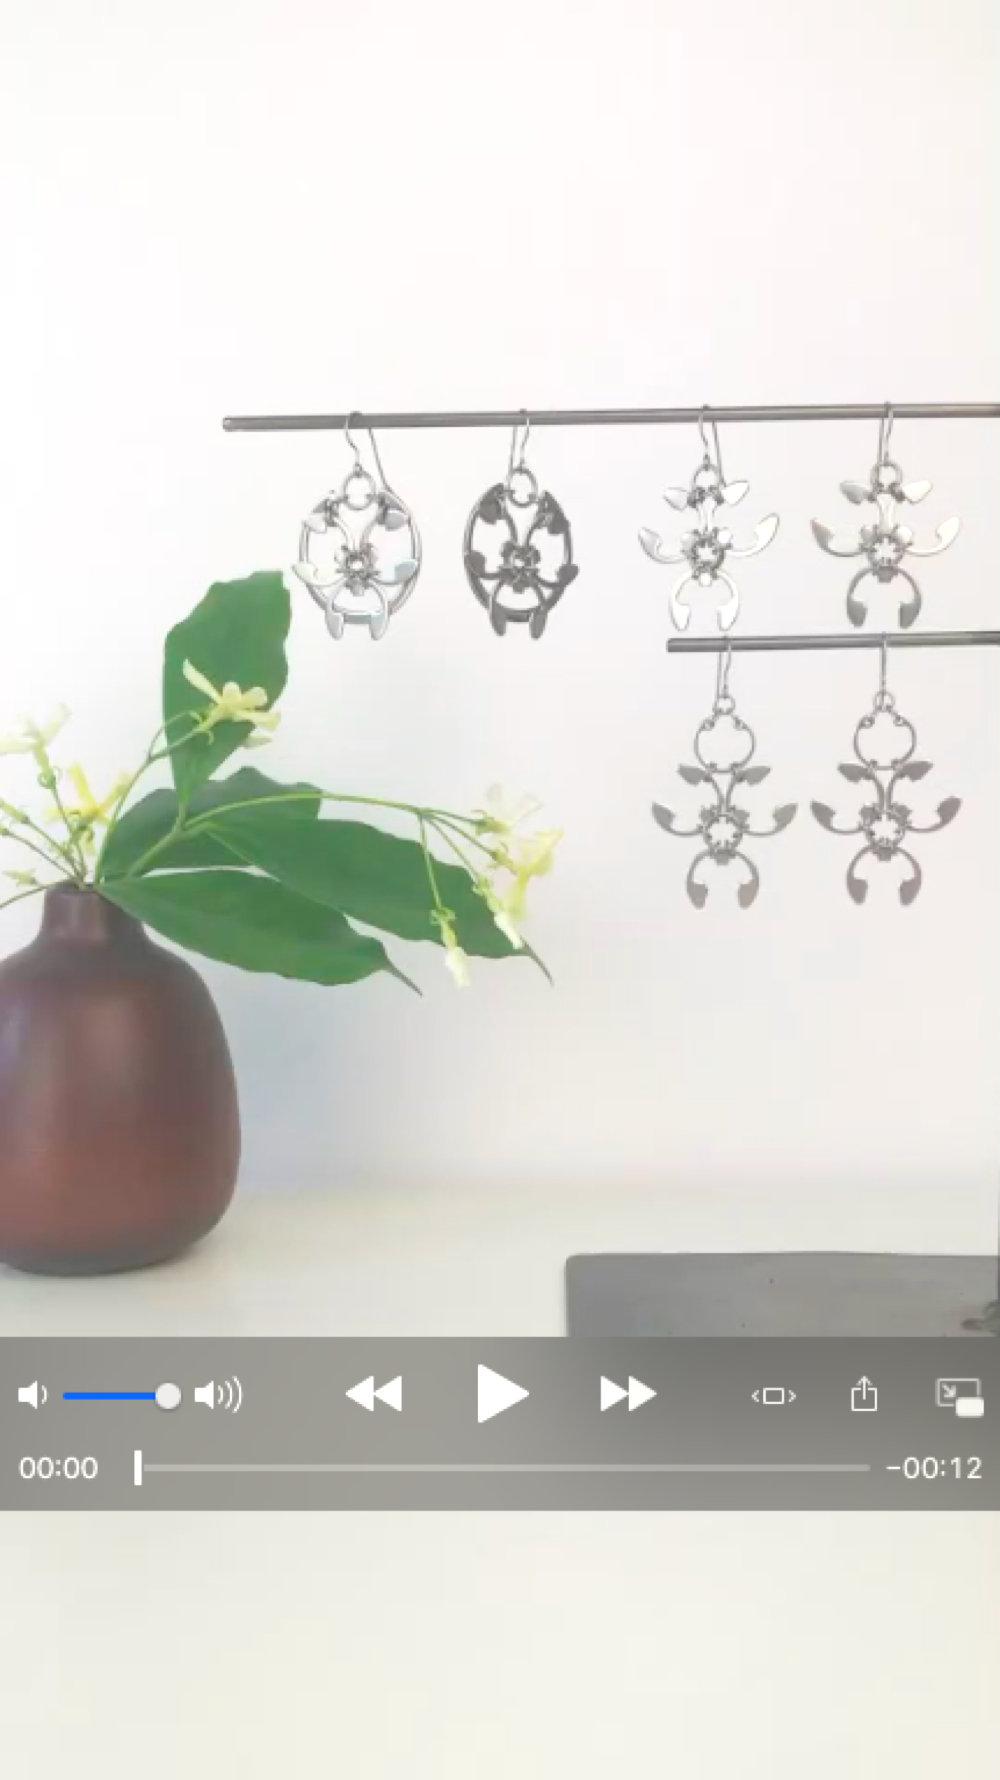 Cover screen for a short video featuring pale yellow star jasmine (Trachelospermum asiaticum) flowers and green leaves in a bud vase by Heath Ceramics on a desk in Wraptillion's studio workspace, with the modern botanical-inspired Rose Window Earrings, Trellis Earrings, and Garland Earrings.